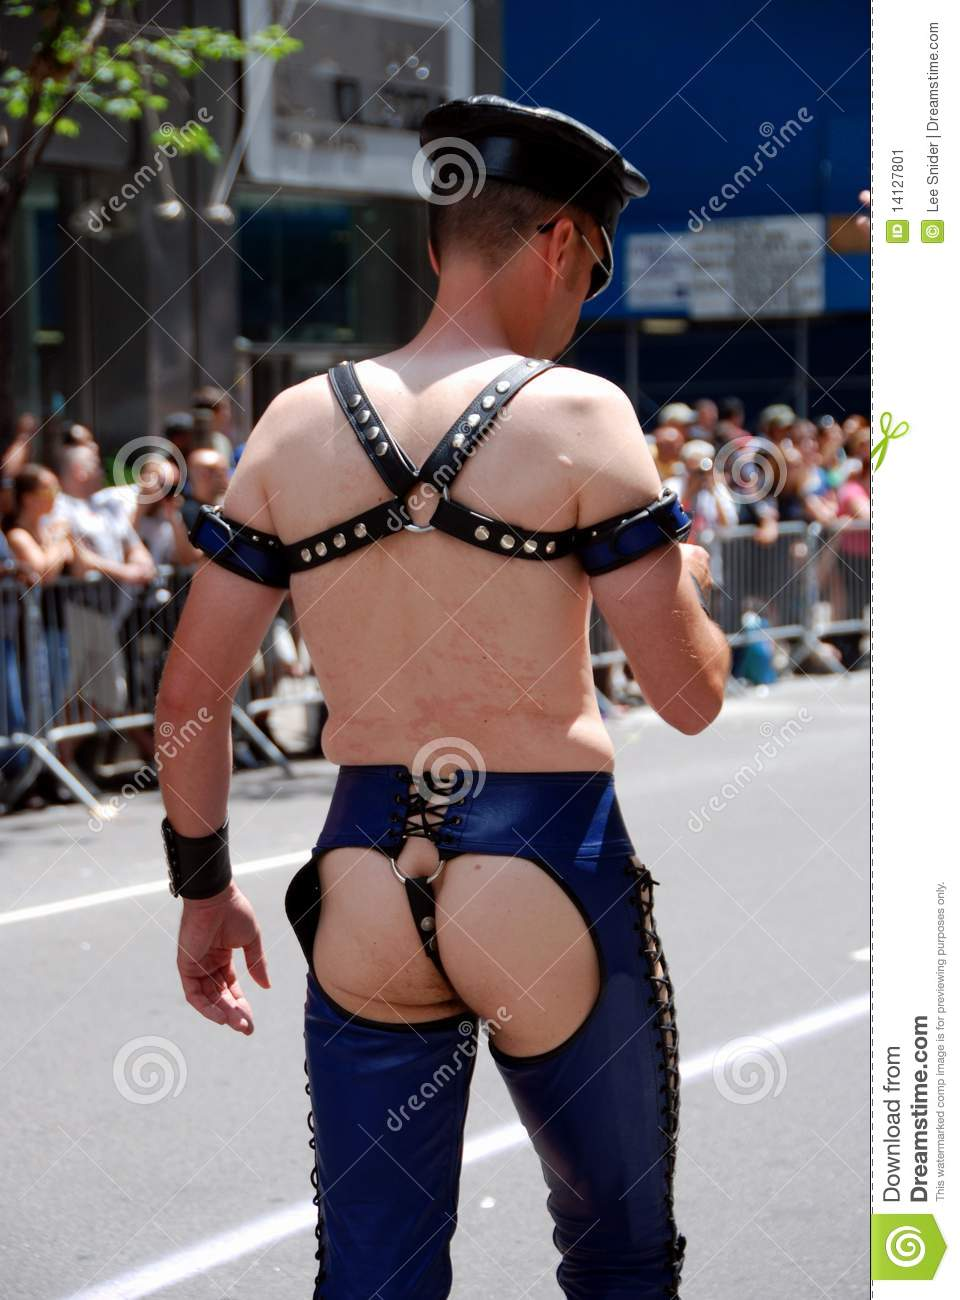 Wearing gay leather chaps in public